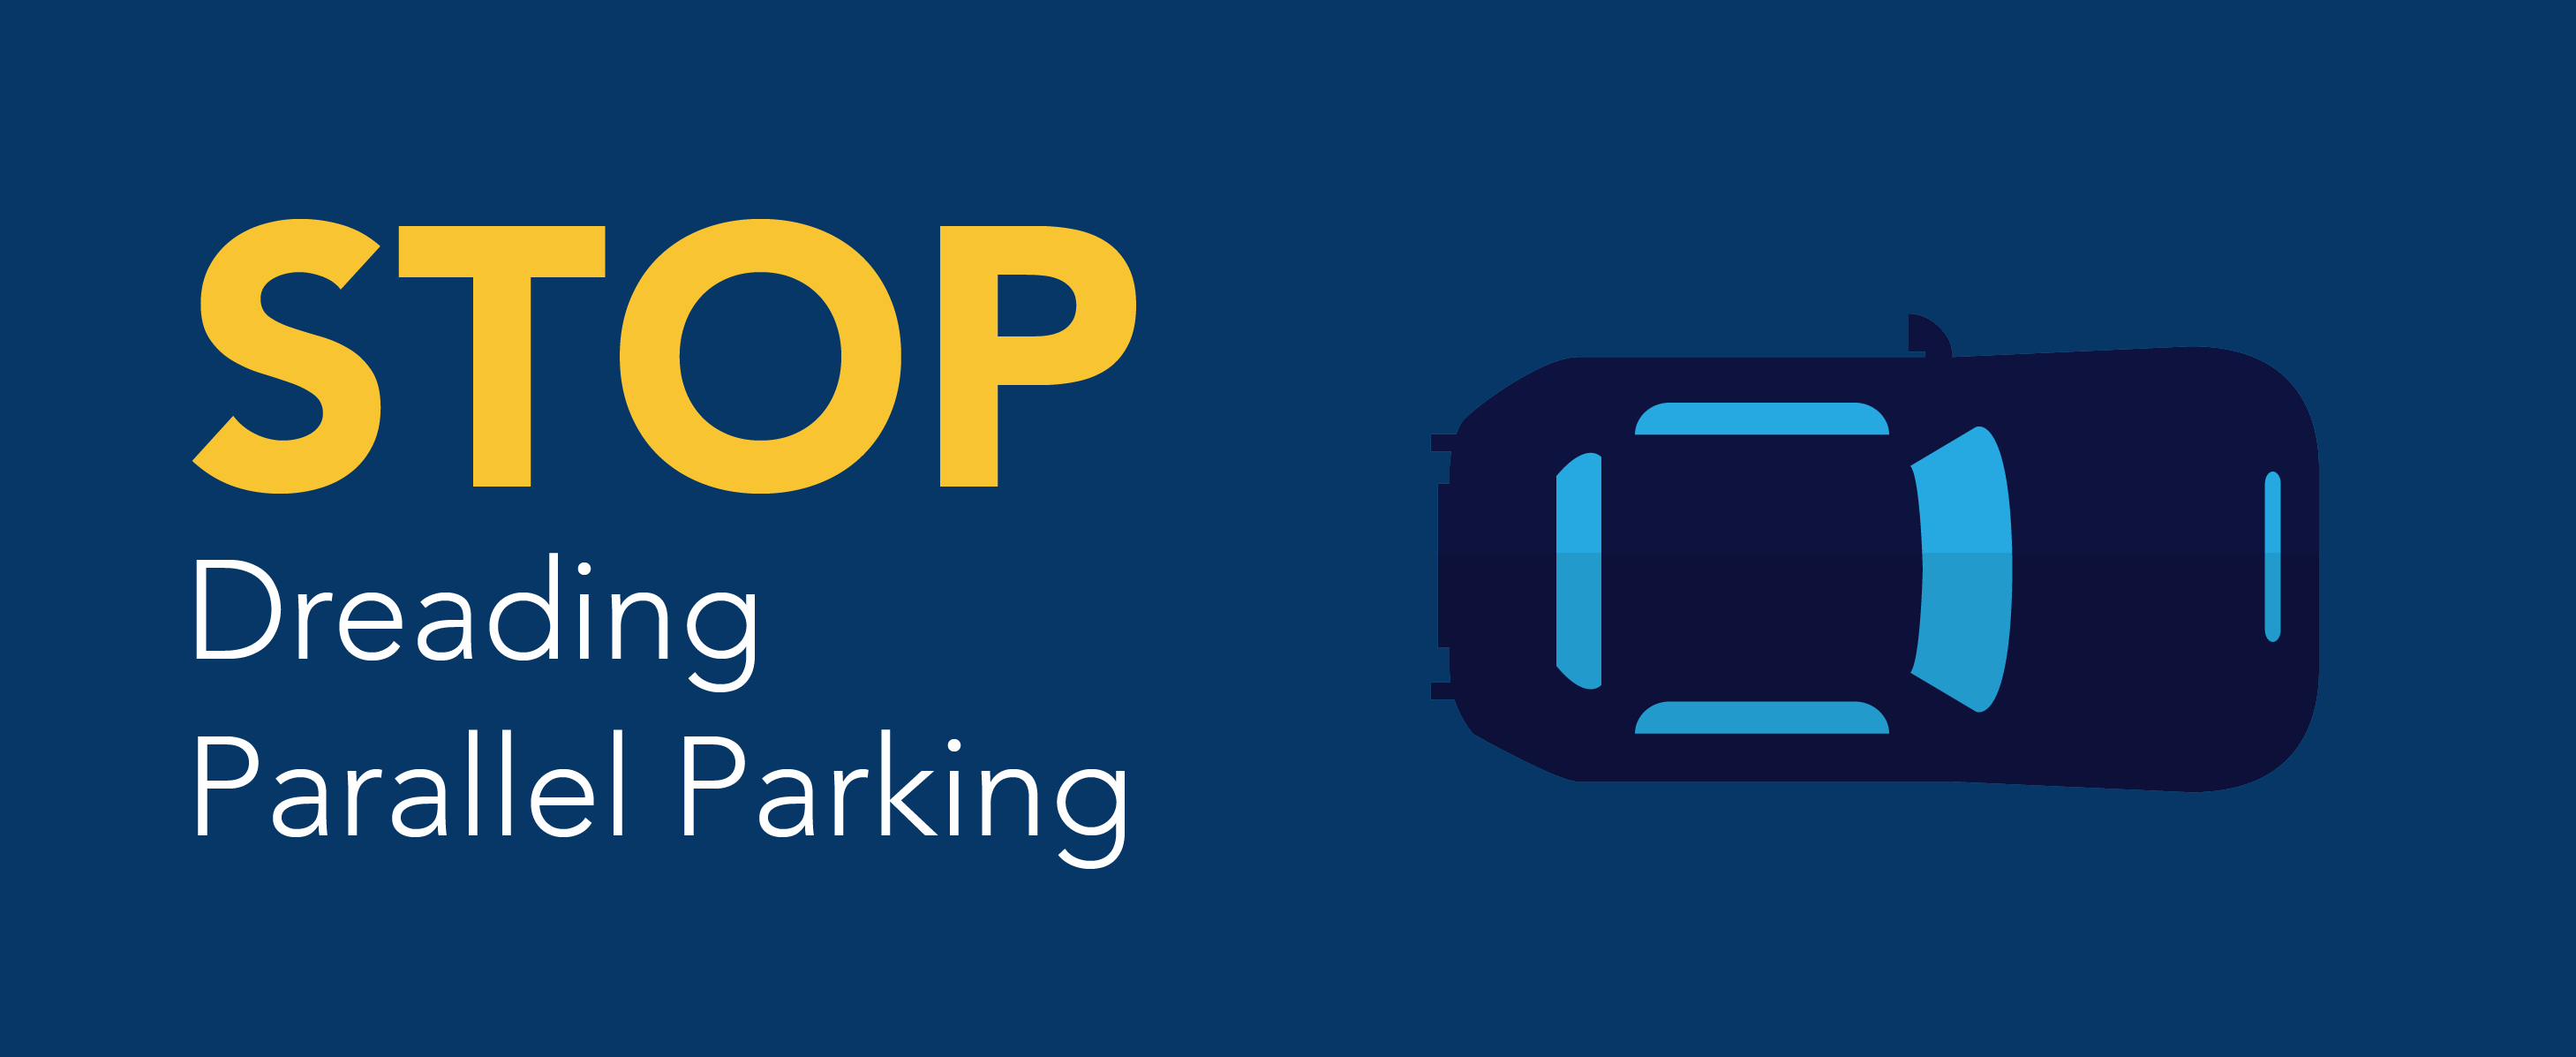 Stop dreading parallel parking. *car graphic*